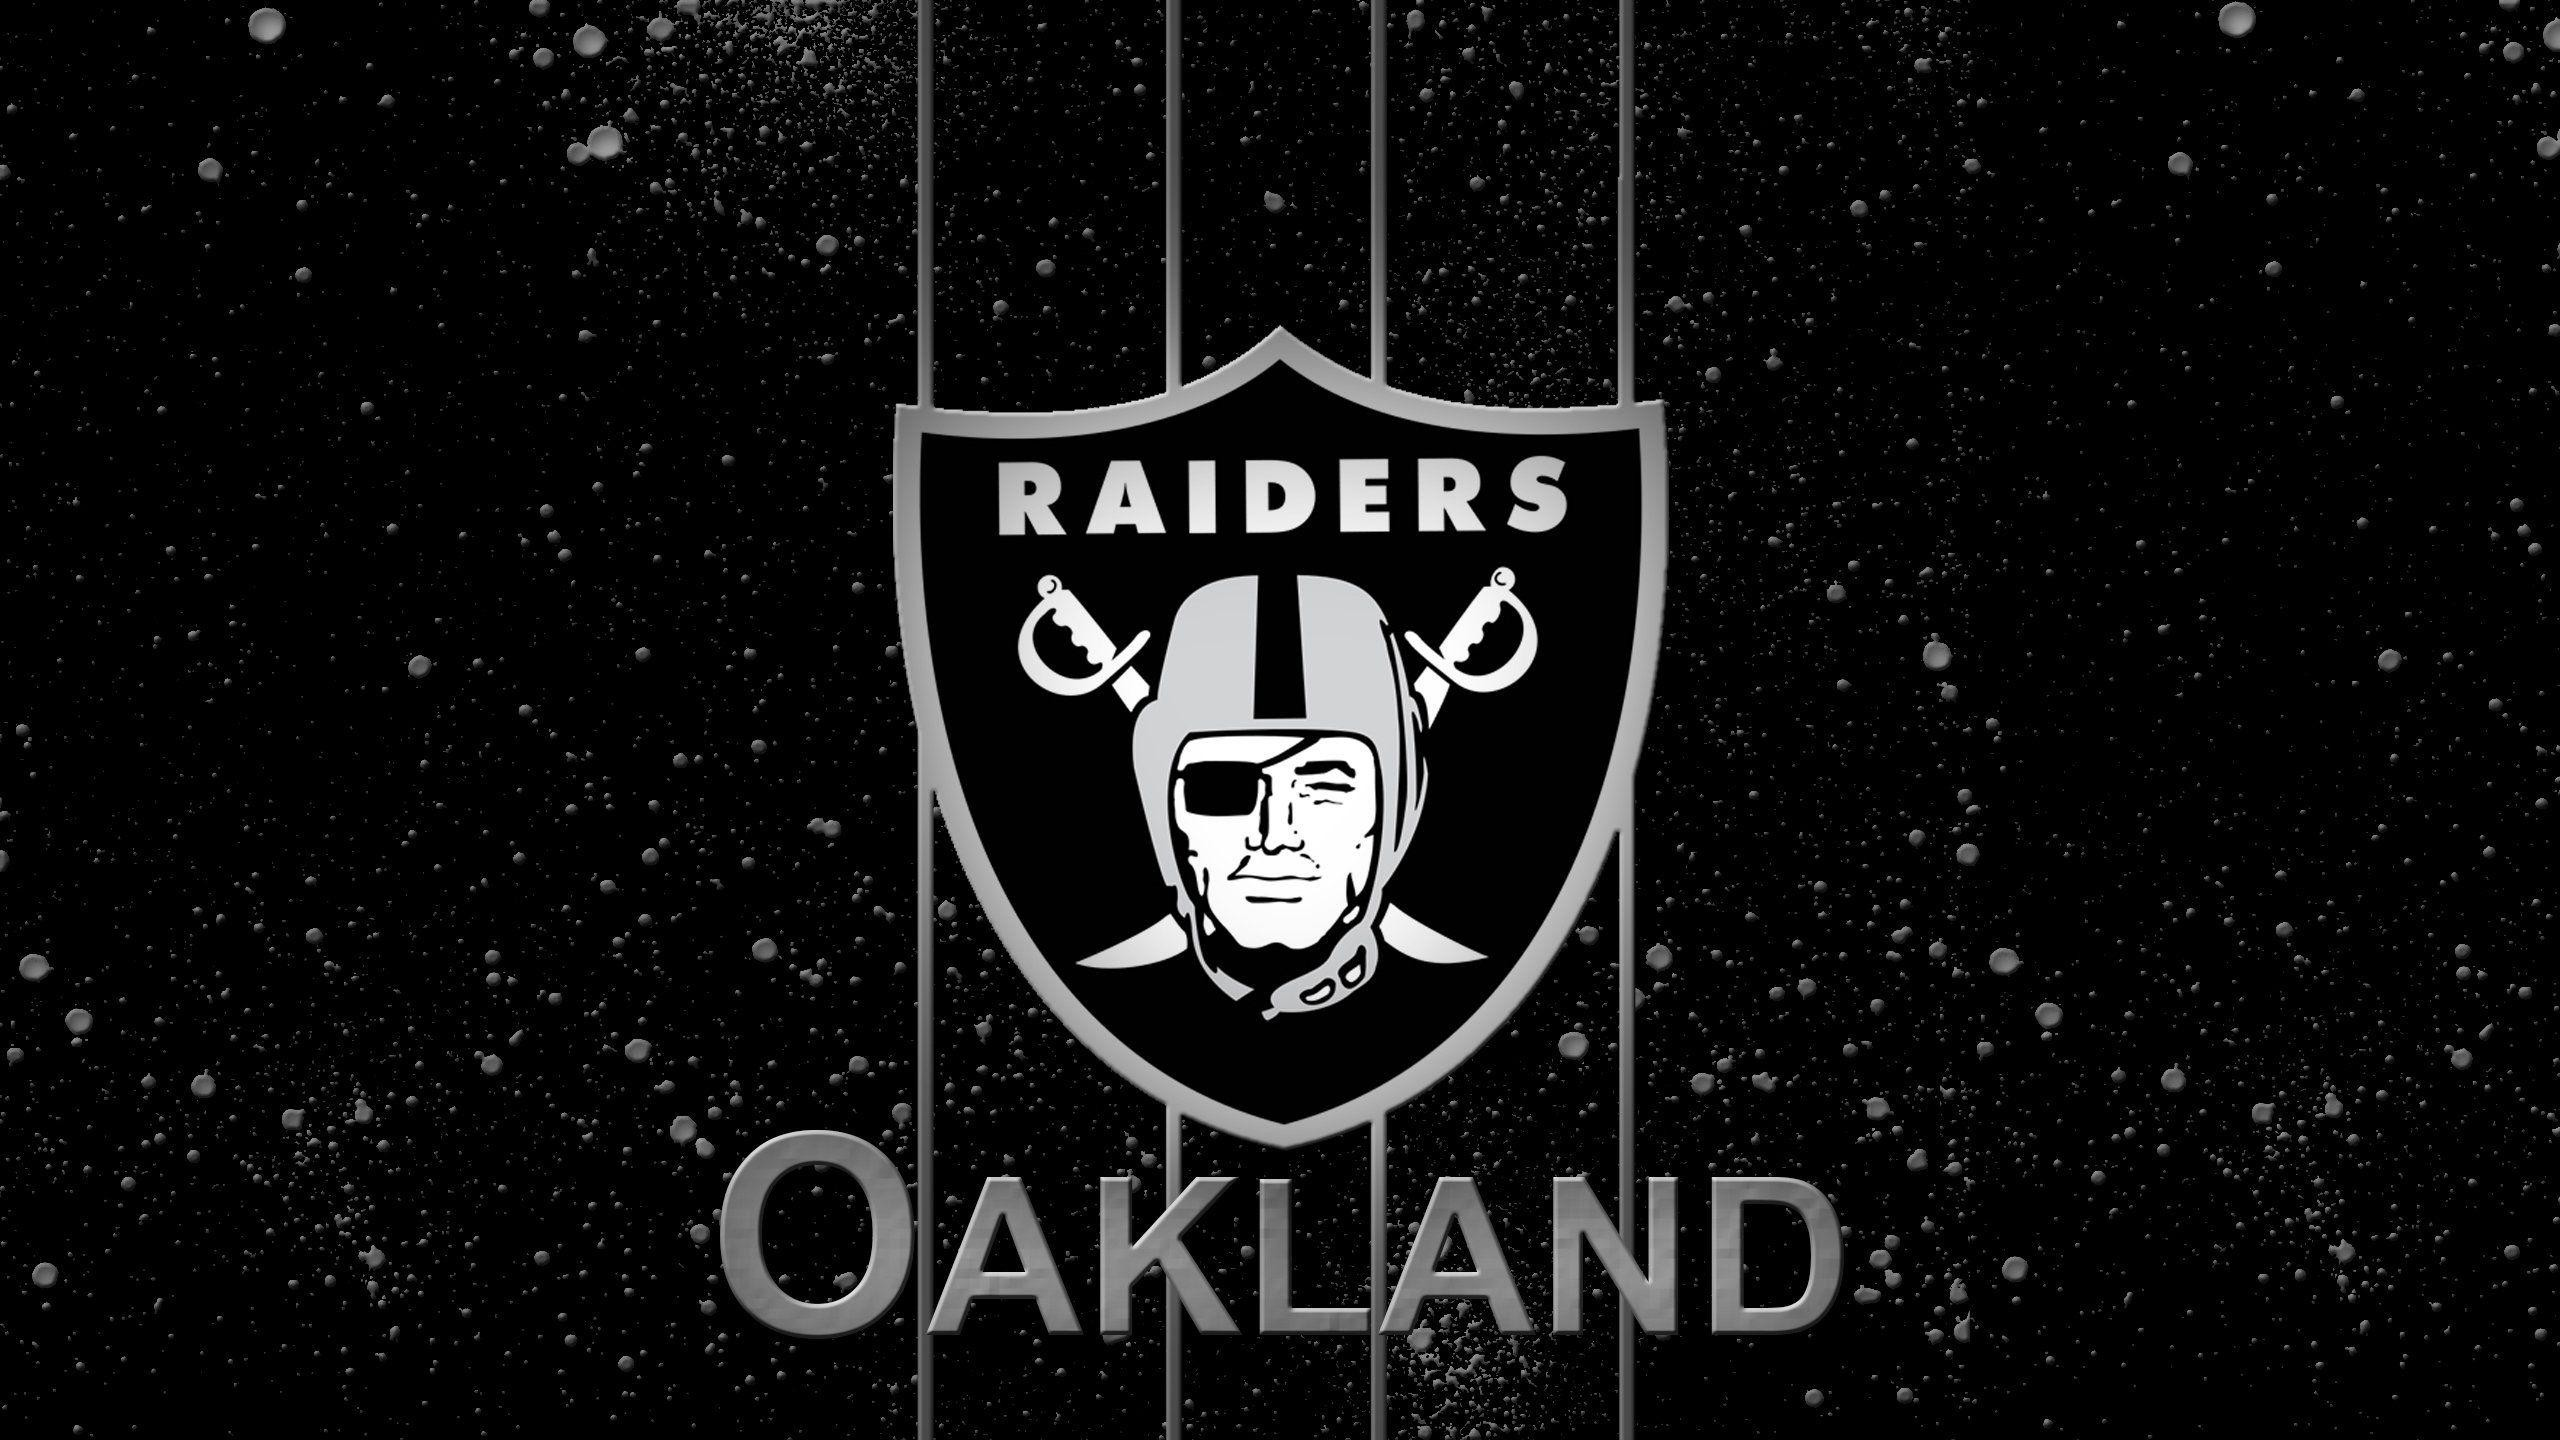 Oakland raiders hd wallpapers 2560x1440 best oakland raiders wallpapers hd wallpaper box voltagebd Choice Image